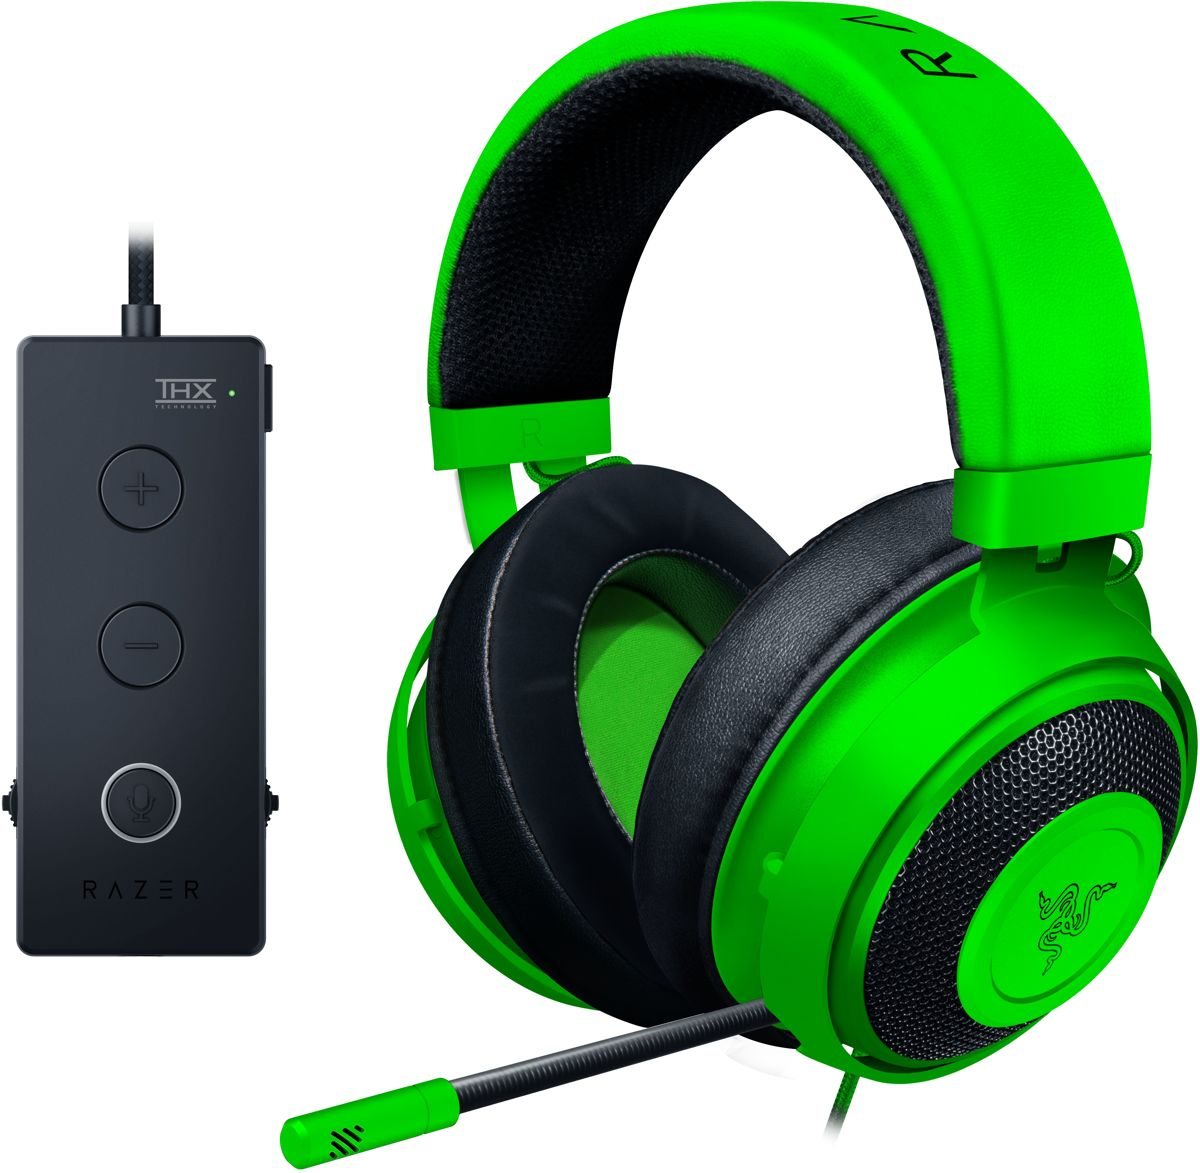 Kraken Tournament Edition - Gaming Headset - Groen - Windows + PS4